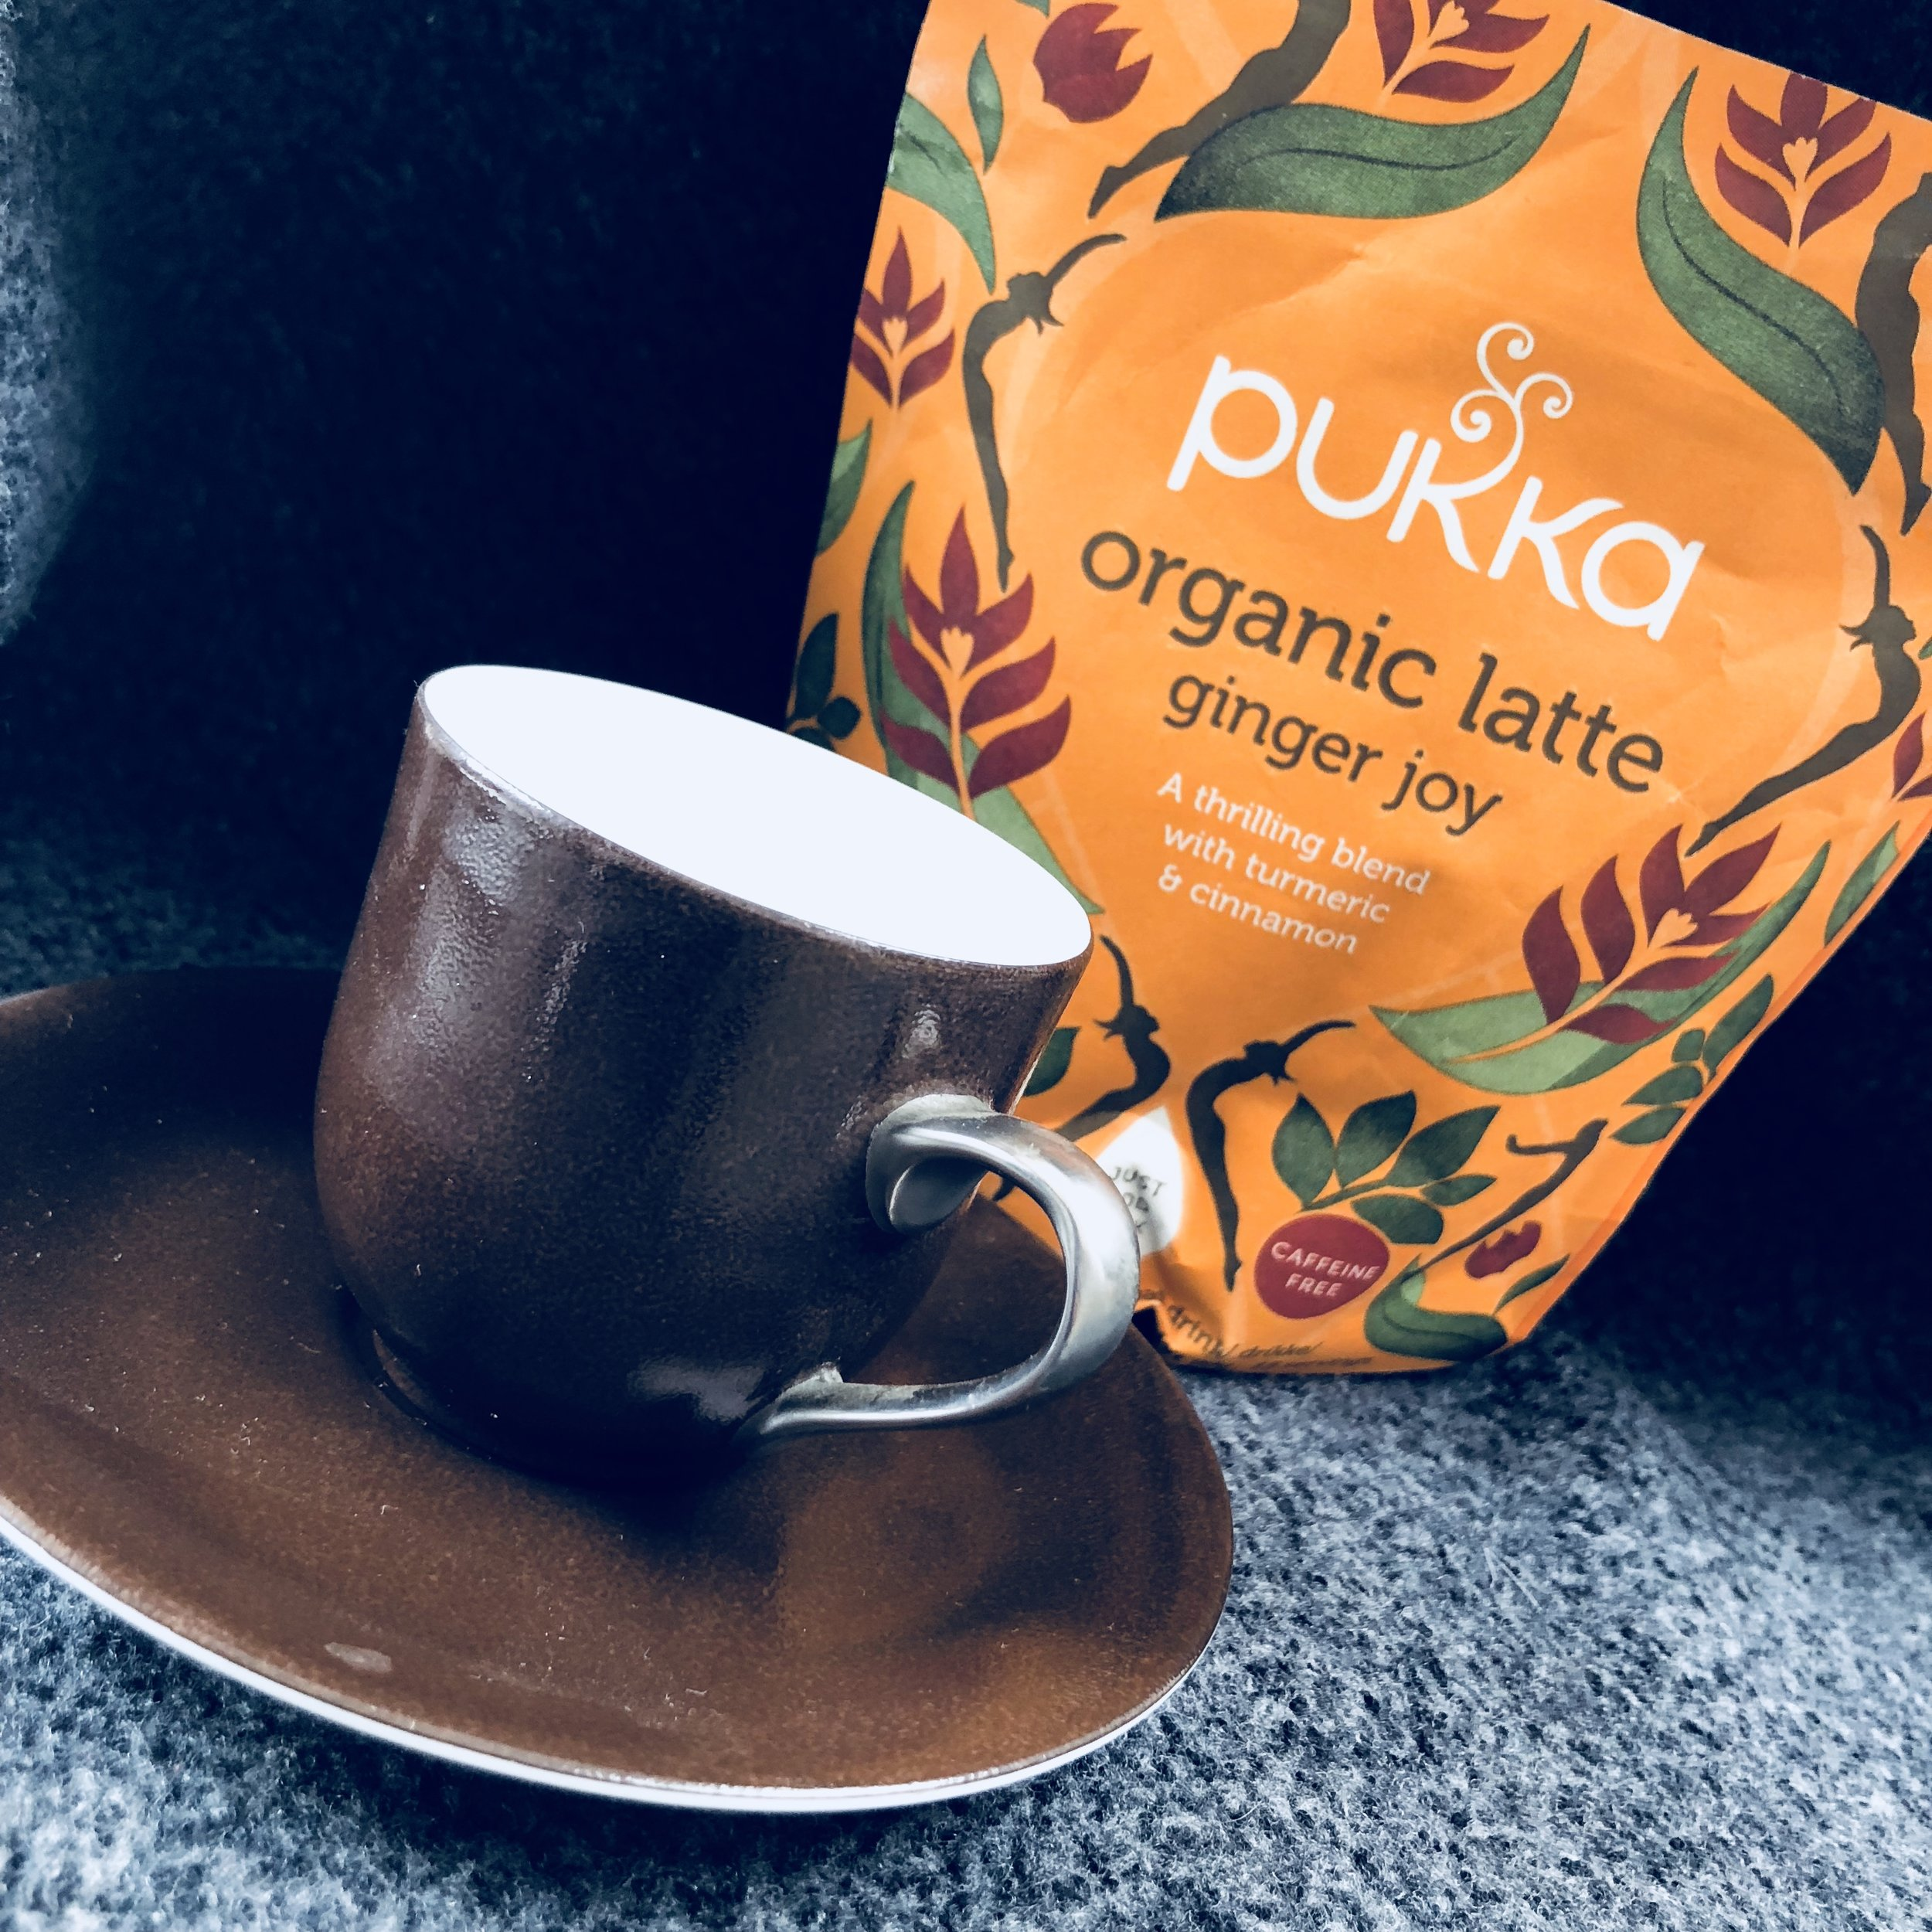 """Need an option to the 5 cups of coffee a day you're drinking? Totally bored with herbal tea?  Try the collection of four Organic Latte herbal drinks by  Pukka  that taste kinda naughty but truly aren't!  A first - or so I believe - these drinks are classified as organic and only contain ground spices, coconut milk powder (deemed the healthiest option, for now) or the chocolate substitute cacao powder.  Choose from  Ginger Joy  (my absolute fave and perfect for the autumn that is very soon about to start) - a blend of turmeric and cinnamon spices,  Turmeric Gold  (my husband's fave) with cardamom and saffron;  Majestic Matcha  green tea, all made with coconut powder; and  Cacao Maca Magic  with ashwagandha (an """"adaptogen"""" popular in Ayurvedic medicine which I take as a supplement to act as a general tonic and help the body cope with daily stress, memory (let's just blame the menopause), and to relieve pain and inflammation).  Simply mix with warm milk - preferably goat's, almond or oat milk for health not dairy (but that's your choice) - better heated in a pan than microwaved - stir in two heaped teaspoons with a tiny amount at first to avoid lumps, then stir in the rest of the milk and enjoy!  Around £6.99 for a sachet, which makes about 15-20 cups ...hunt them down and let me know what you think!"""